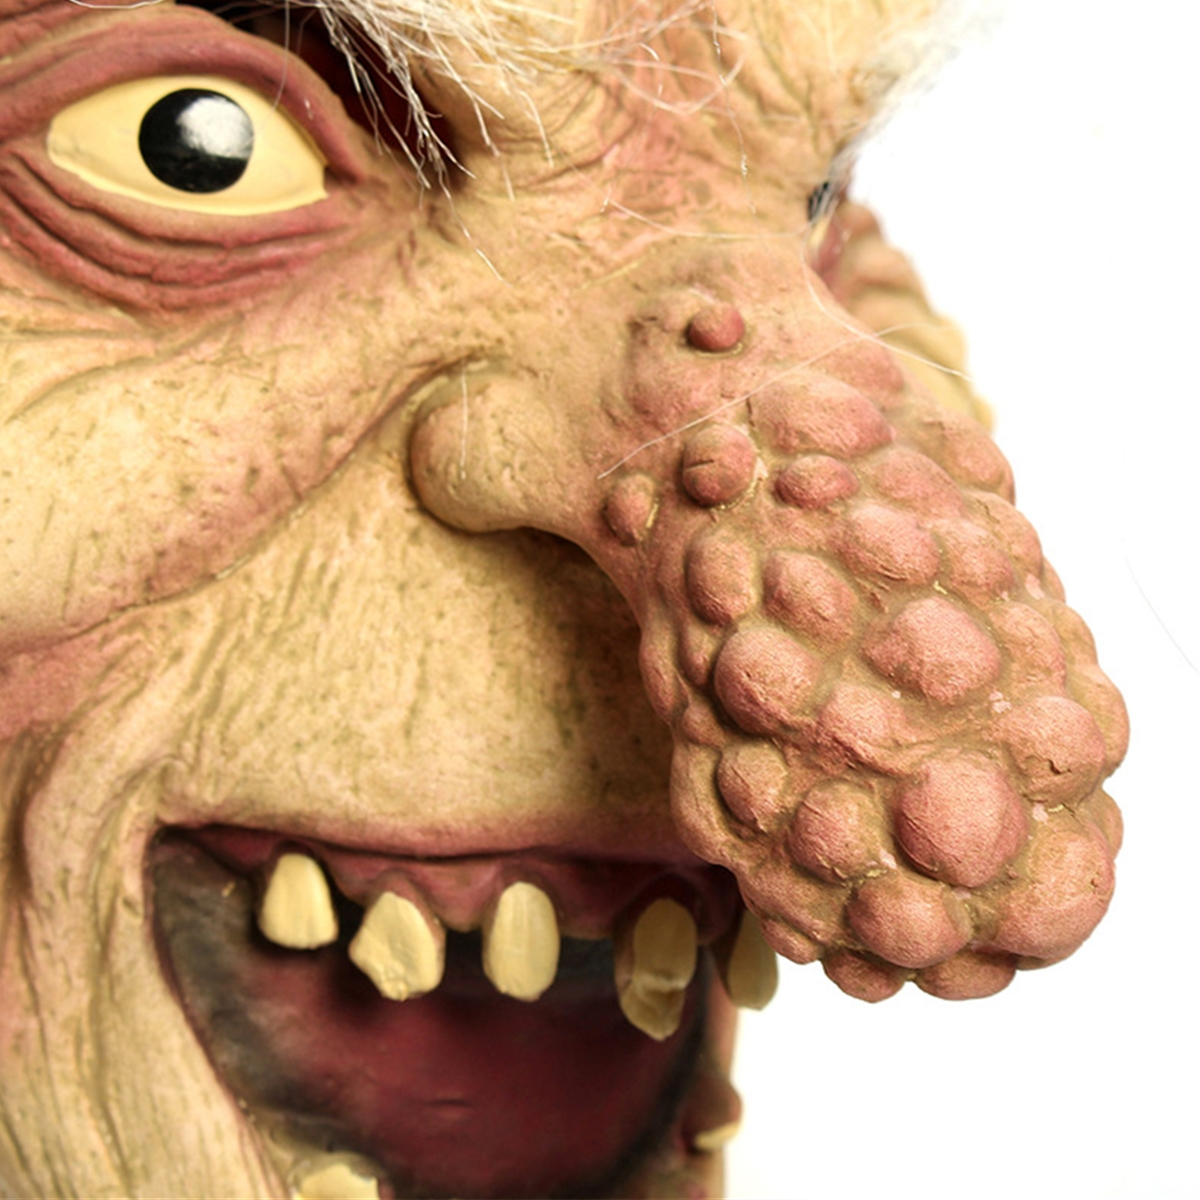 Halloween Scary Latex Bald Old Man Big Nose Mask Fancy Dress Costume Party Prop Natural Latex Perfect for Creating Horror Effect